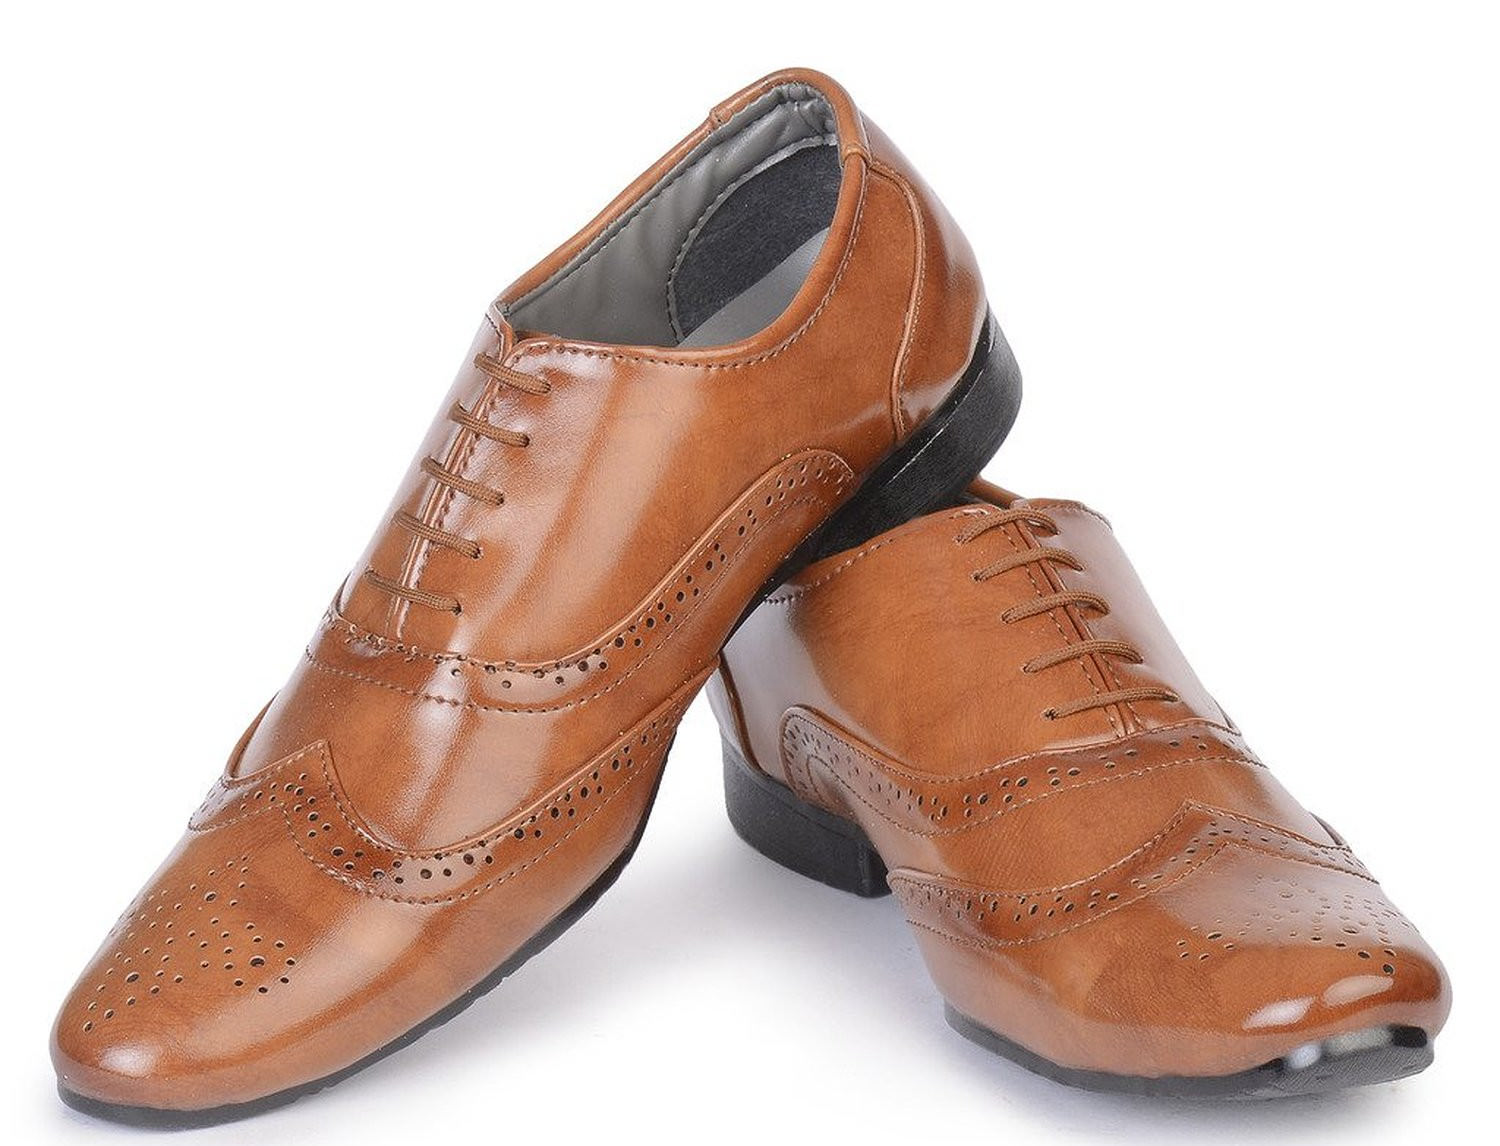 semana patent leather shoes